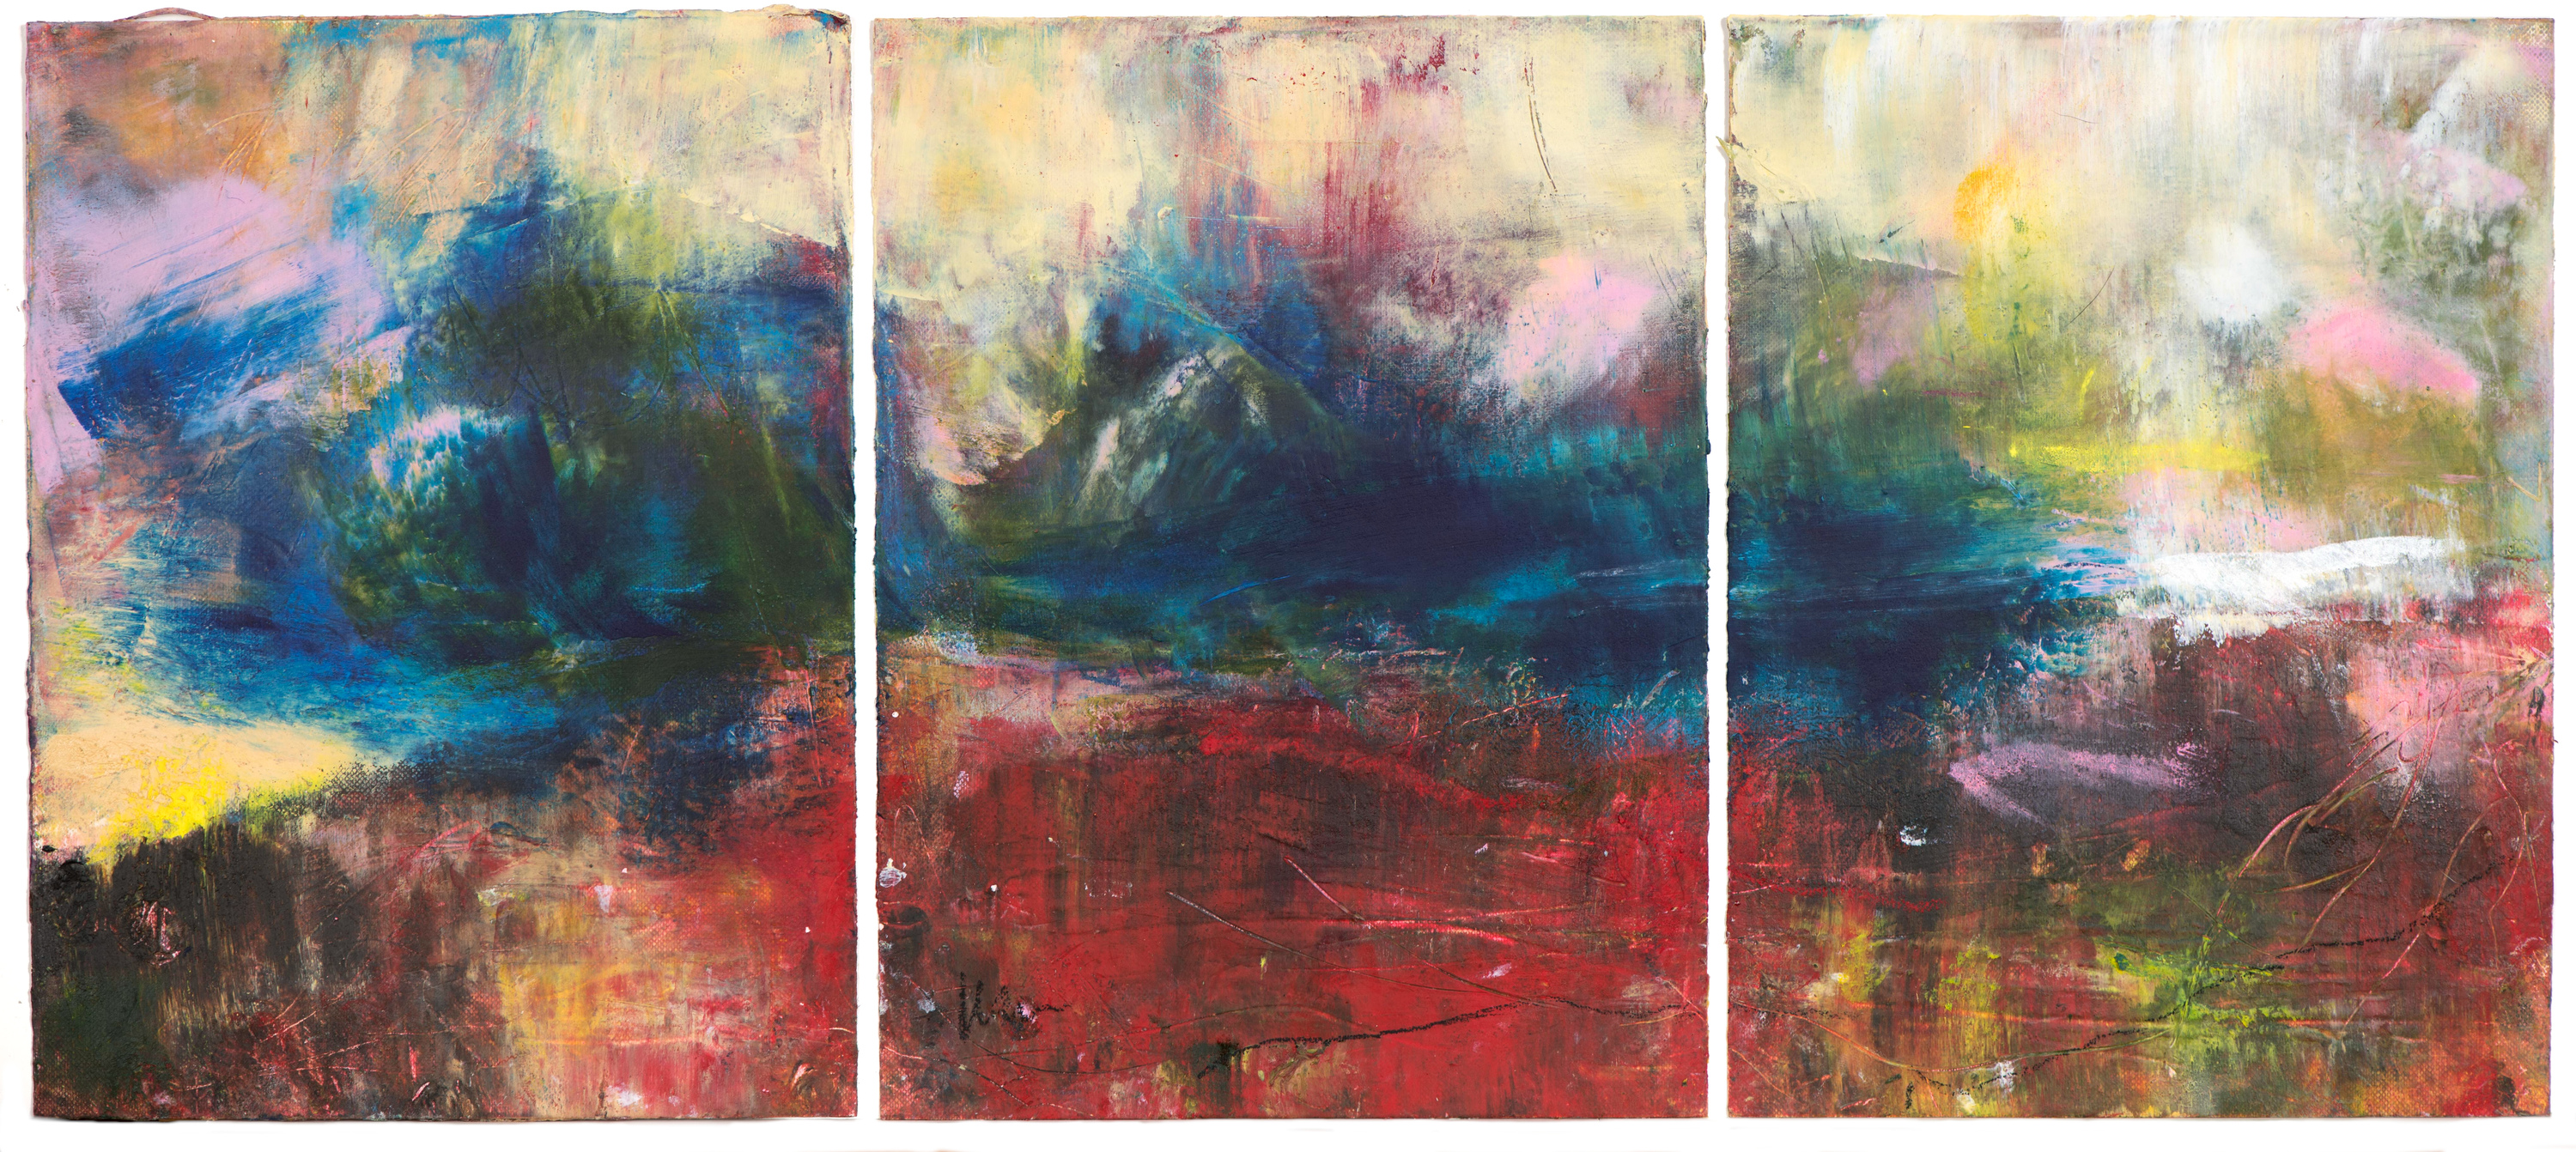 She turned her face into the wind triptych oil on cold wax on paper framed eadaon glynn 2019 qhezfd